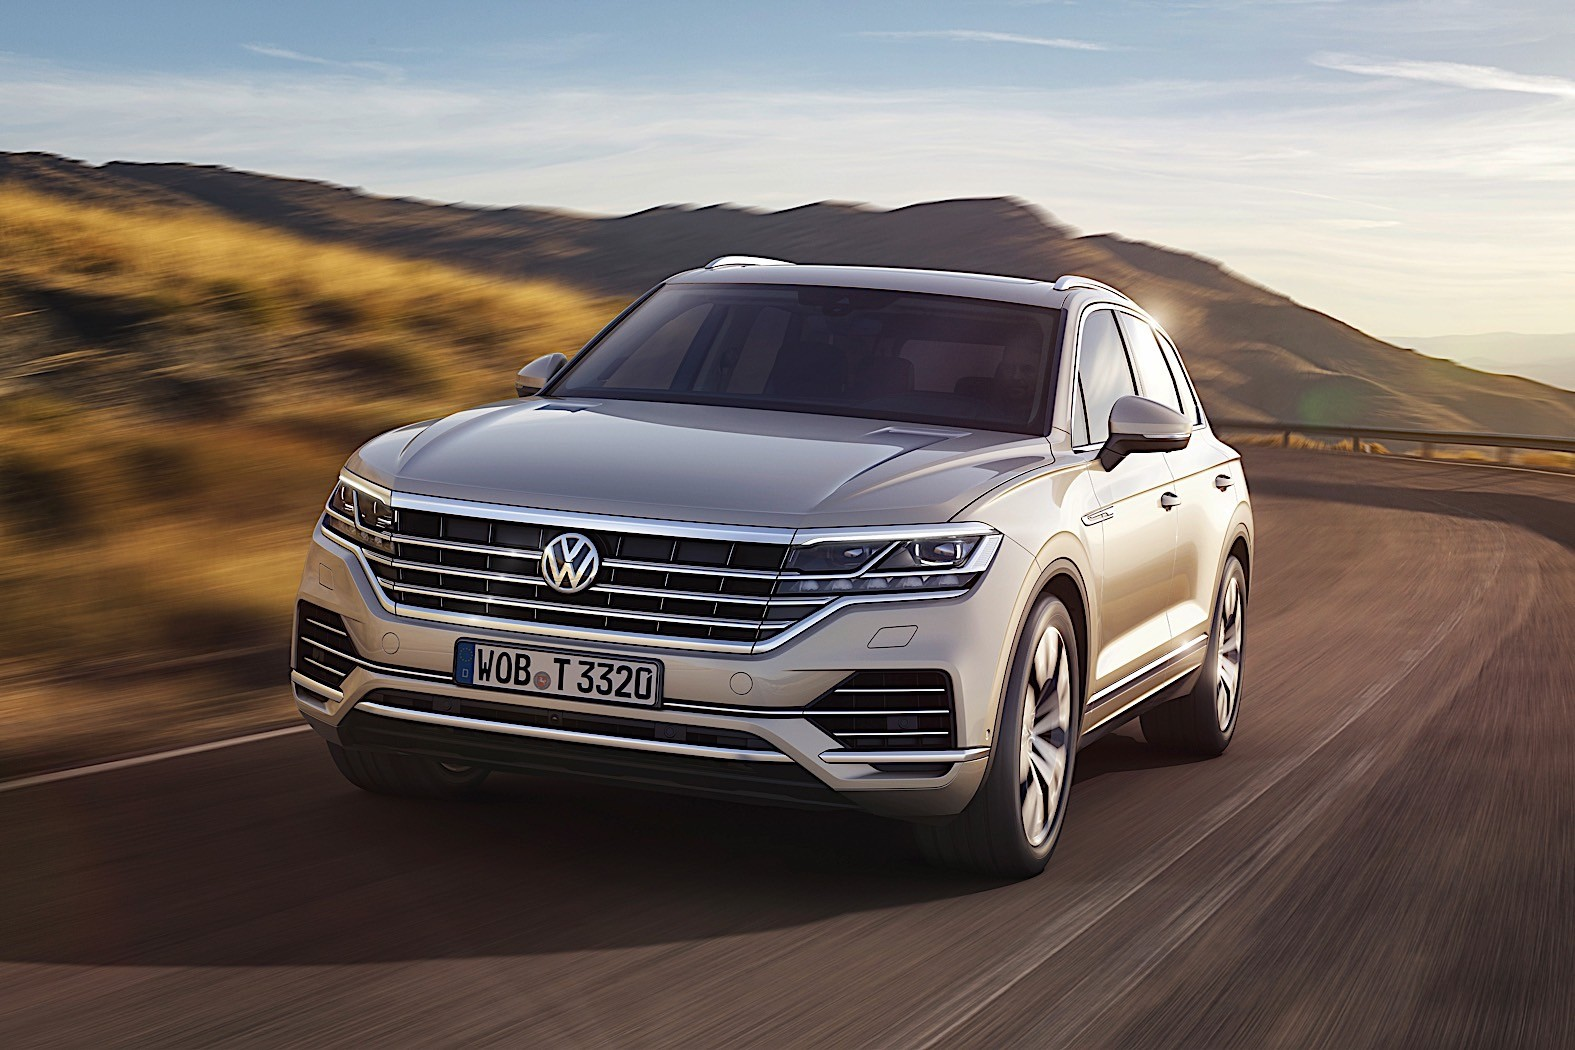 2018 Volkswagen Touareg Breaks Cover in China - autoevolution